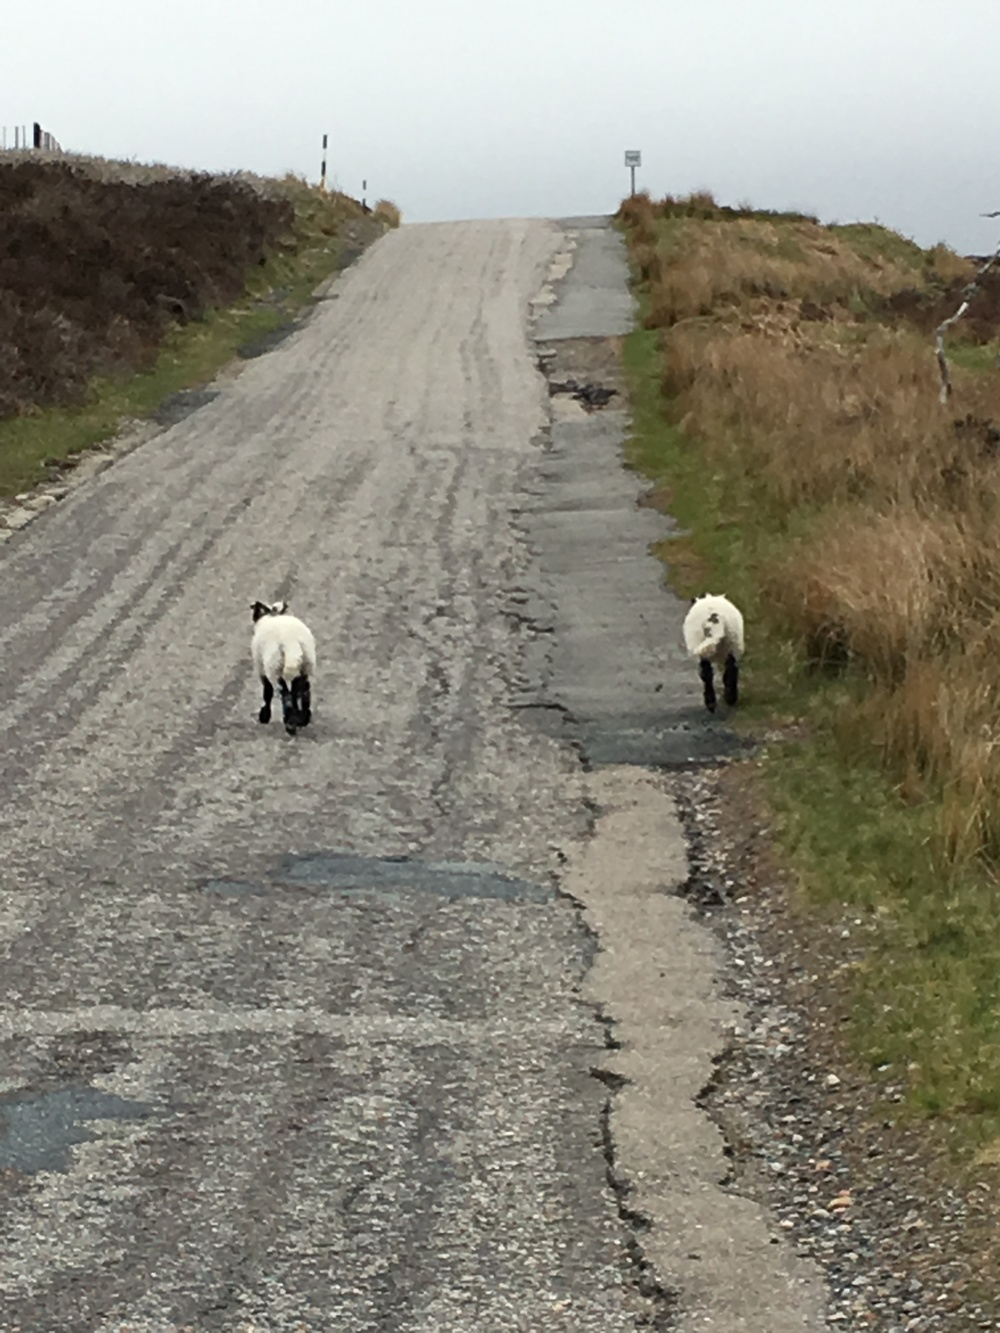 Some sheep with whom we shared the road